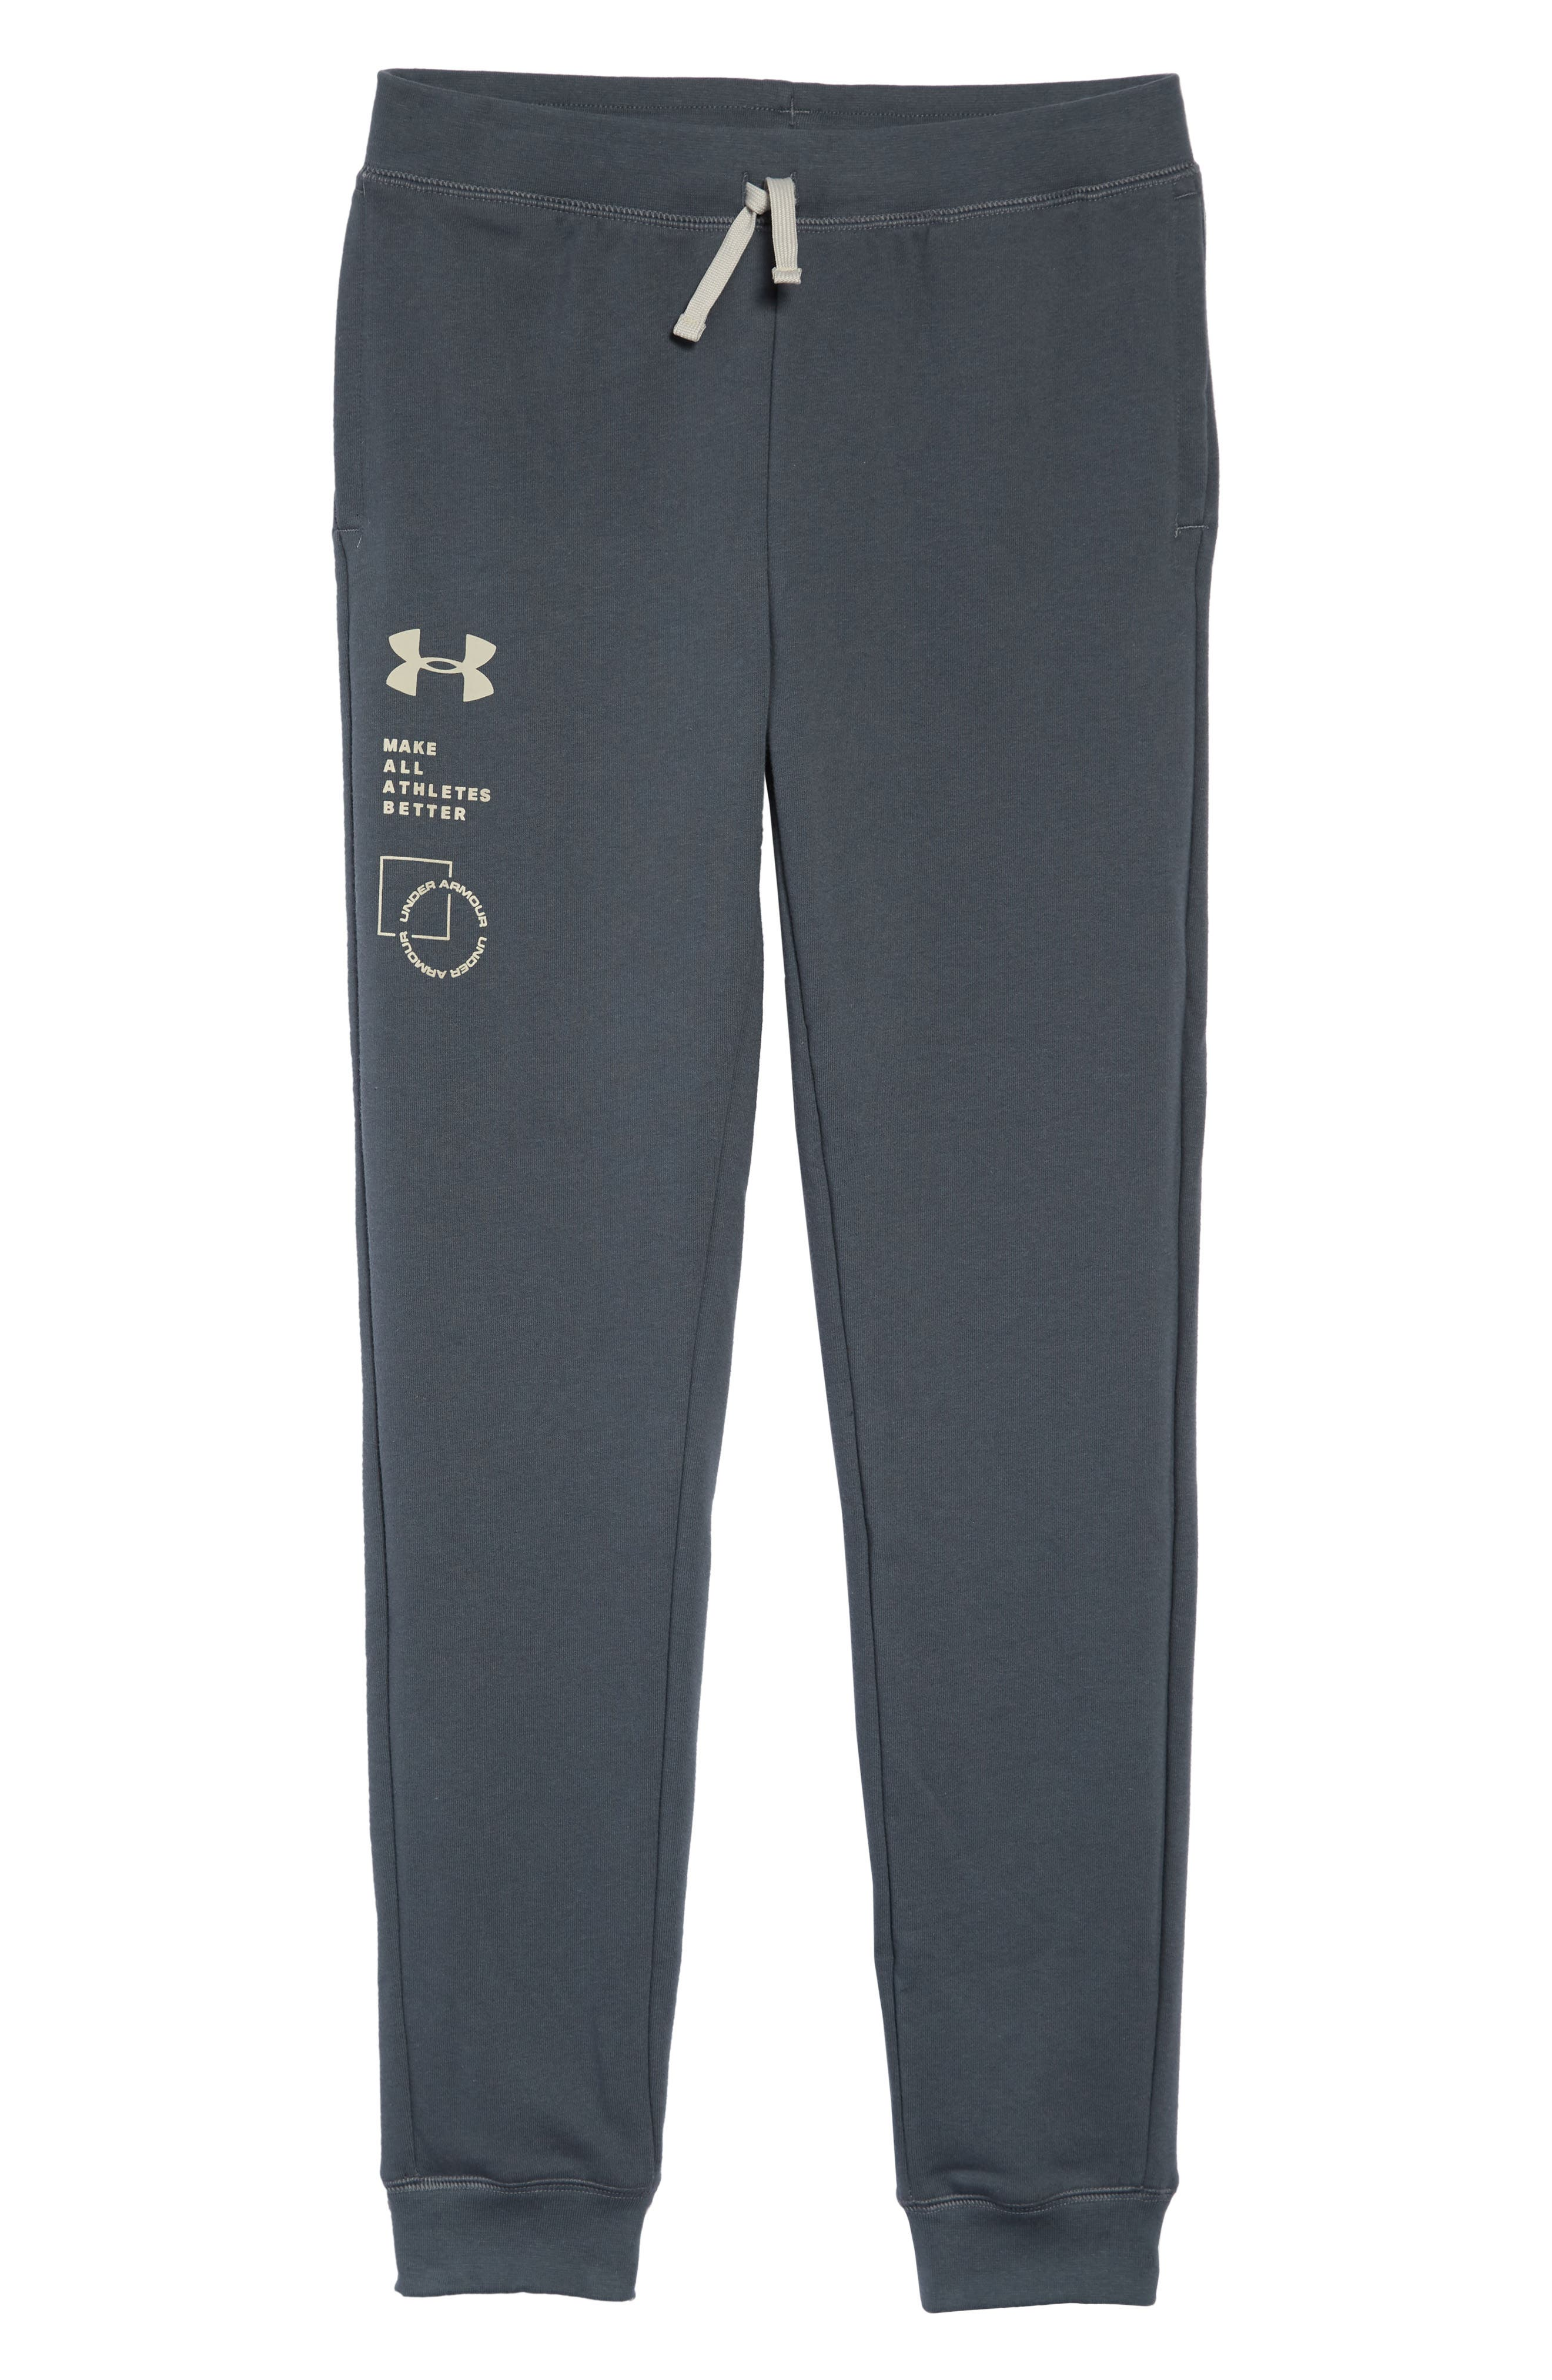 UNDER ARMOUR Rival French Terry Sweatpants, Main, color, PITCH GRAY/ KHAKI BASE